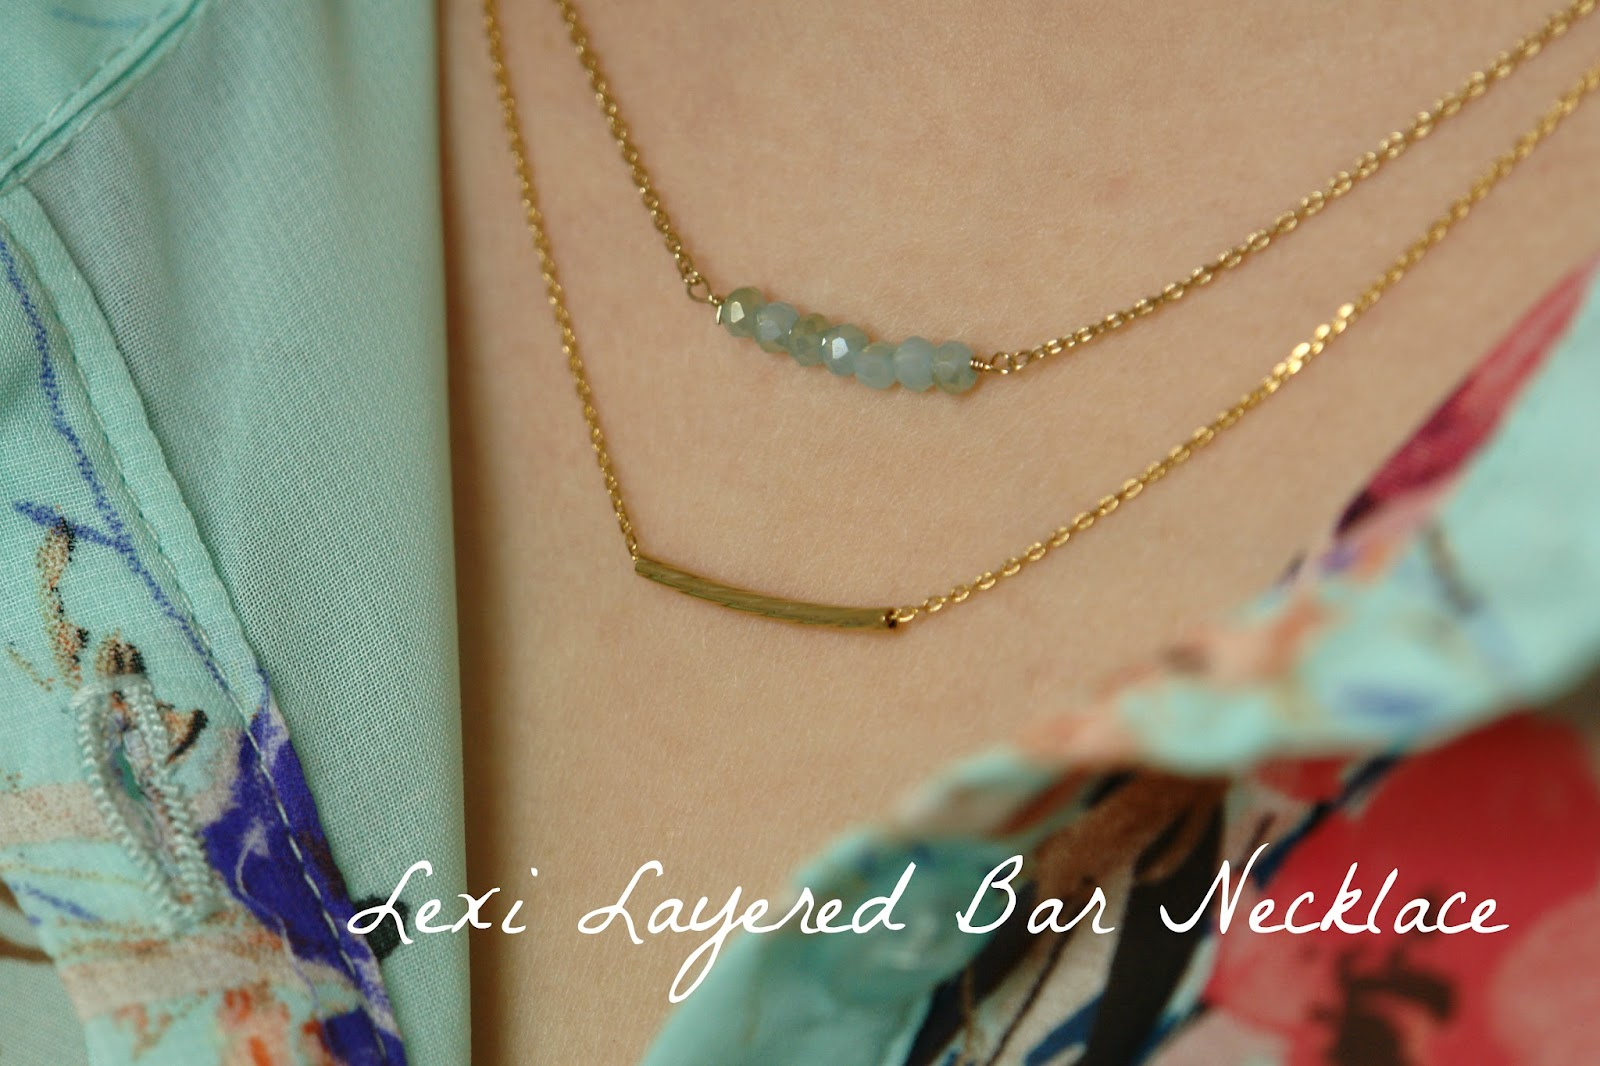 Z for Accessorize jewellery - my buys, Accessorize, gold, jewellery, necklace, rings, jewelry, blogger, fashion, trends